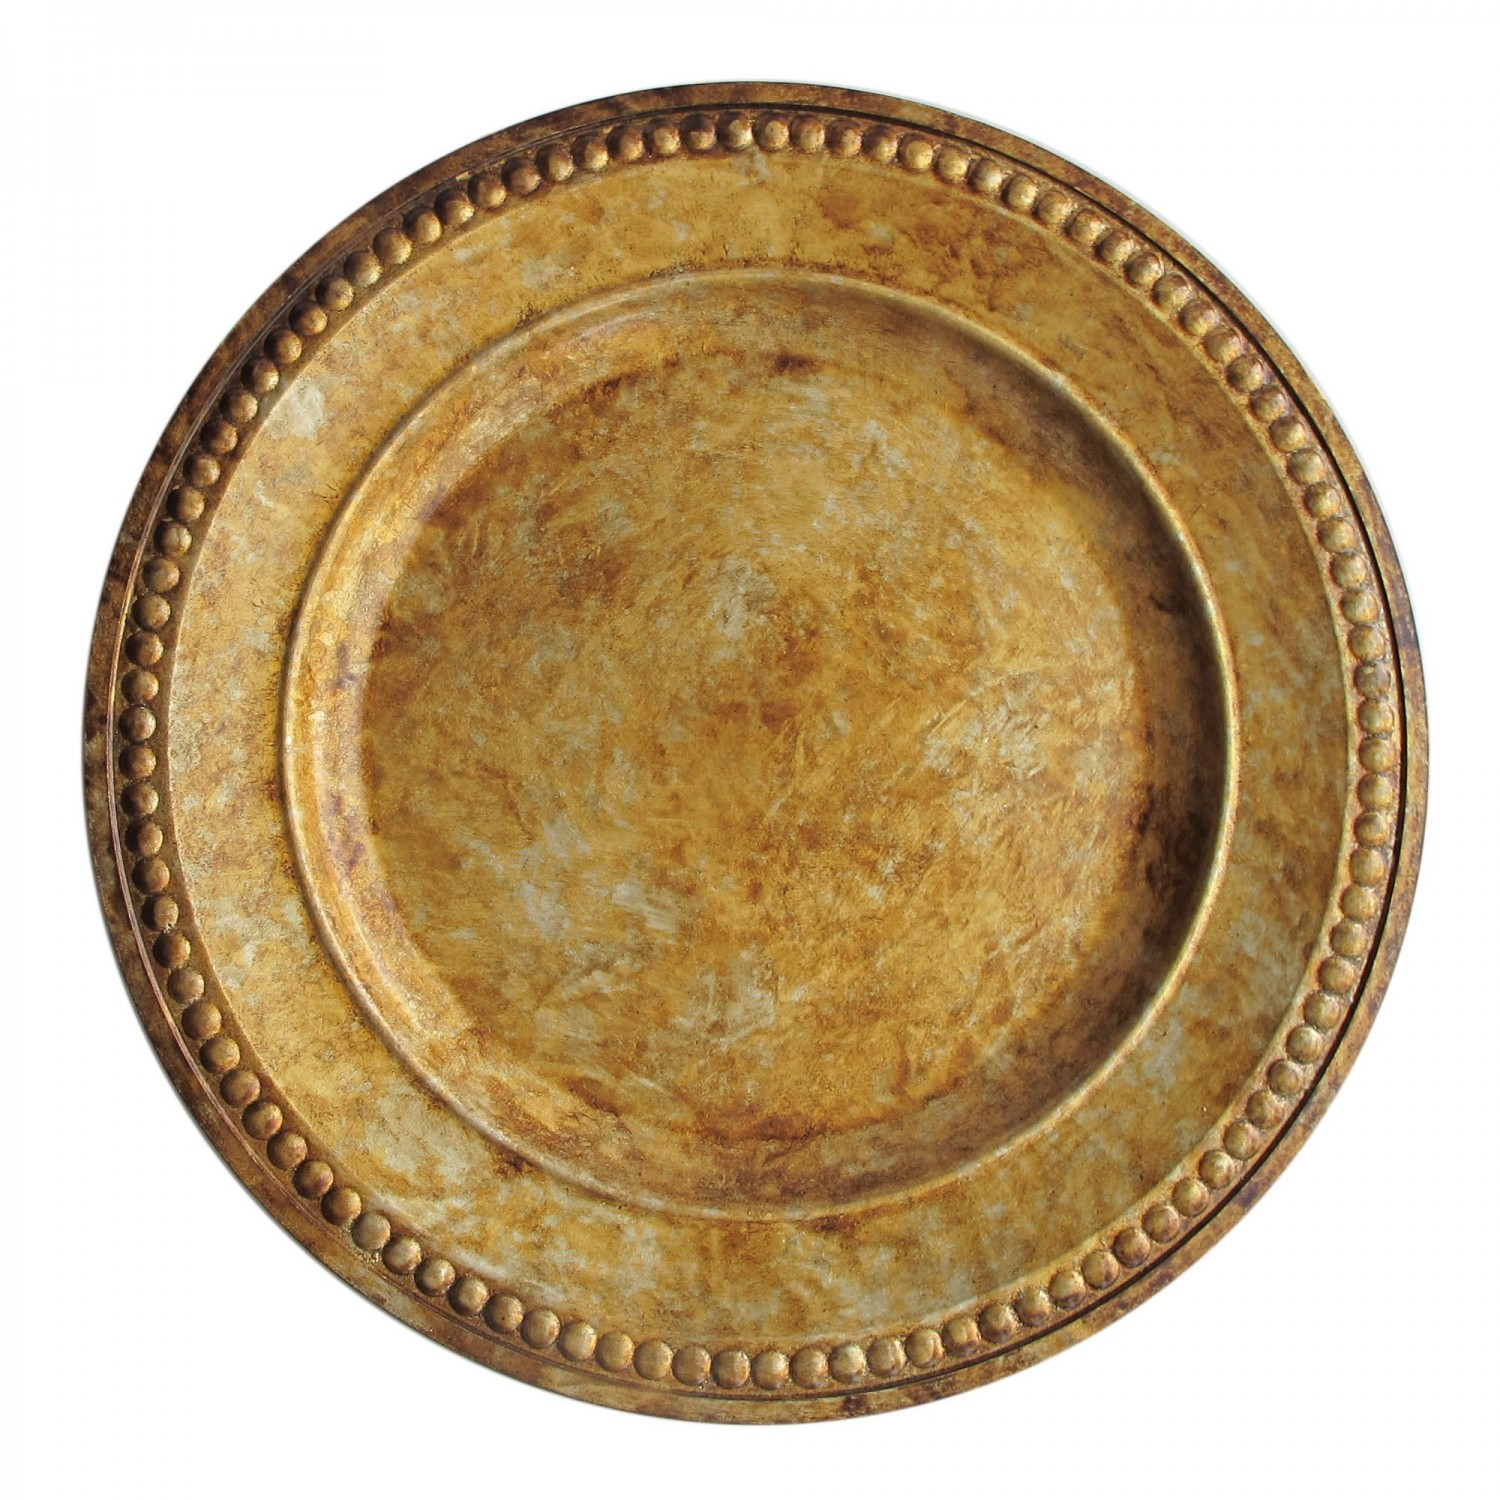 The Jay Companies 1320375 Round Beaded Antique Gold Charger Plate 14&